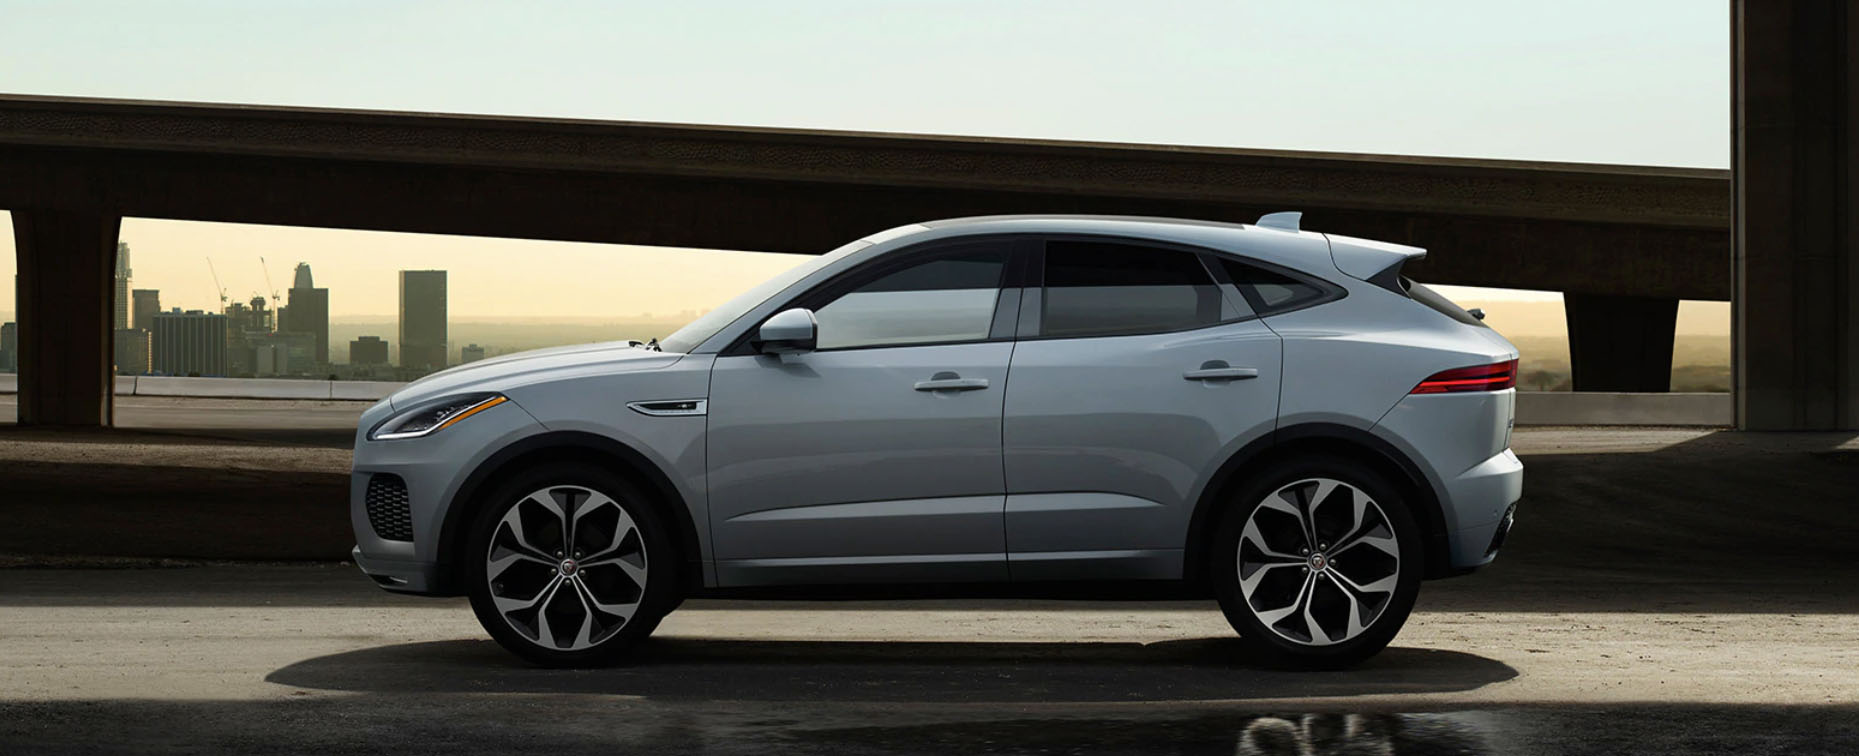 2020 Jaguar E-Pace Safety Main Img